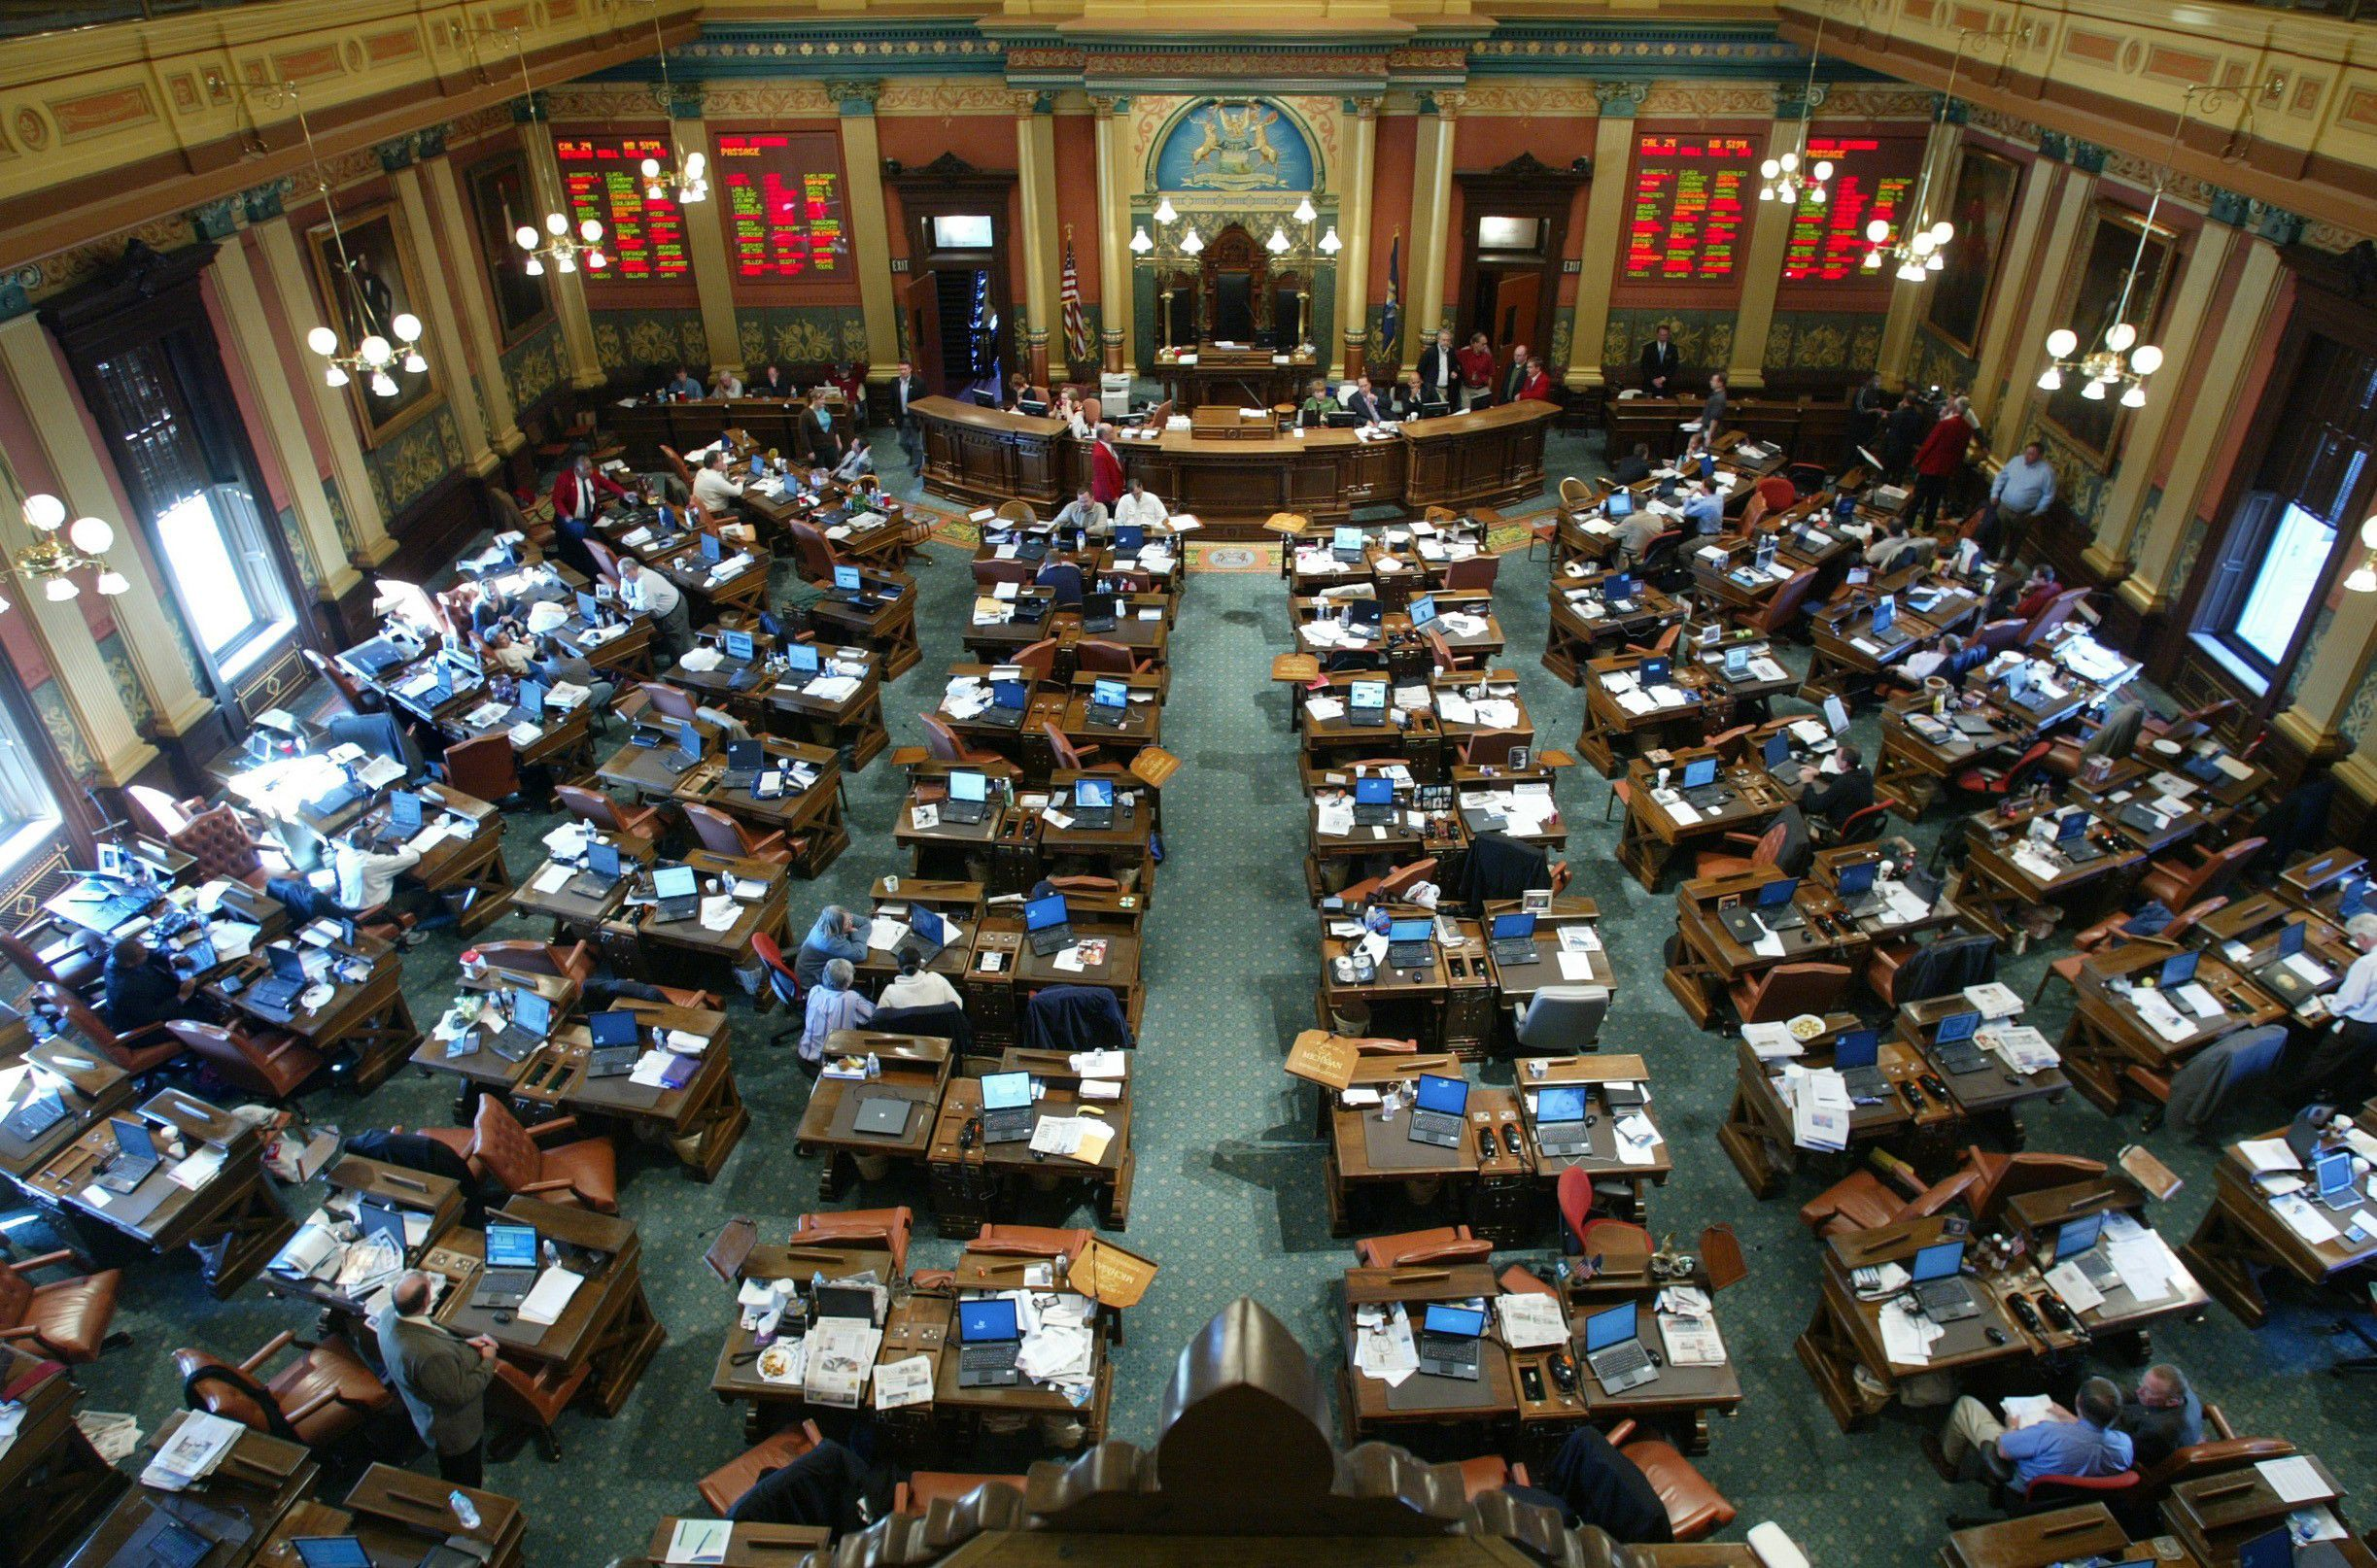 Michigan lawmakers set rare Friday session for possible auto insurance reform vote